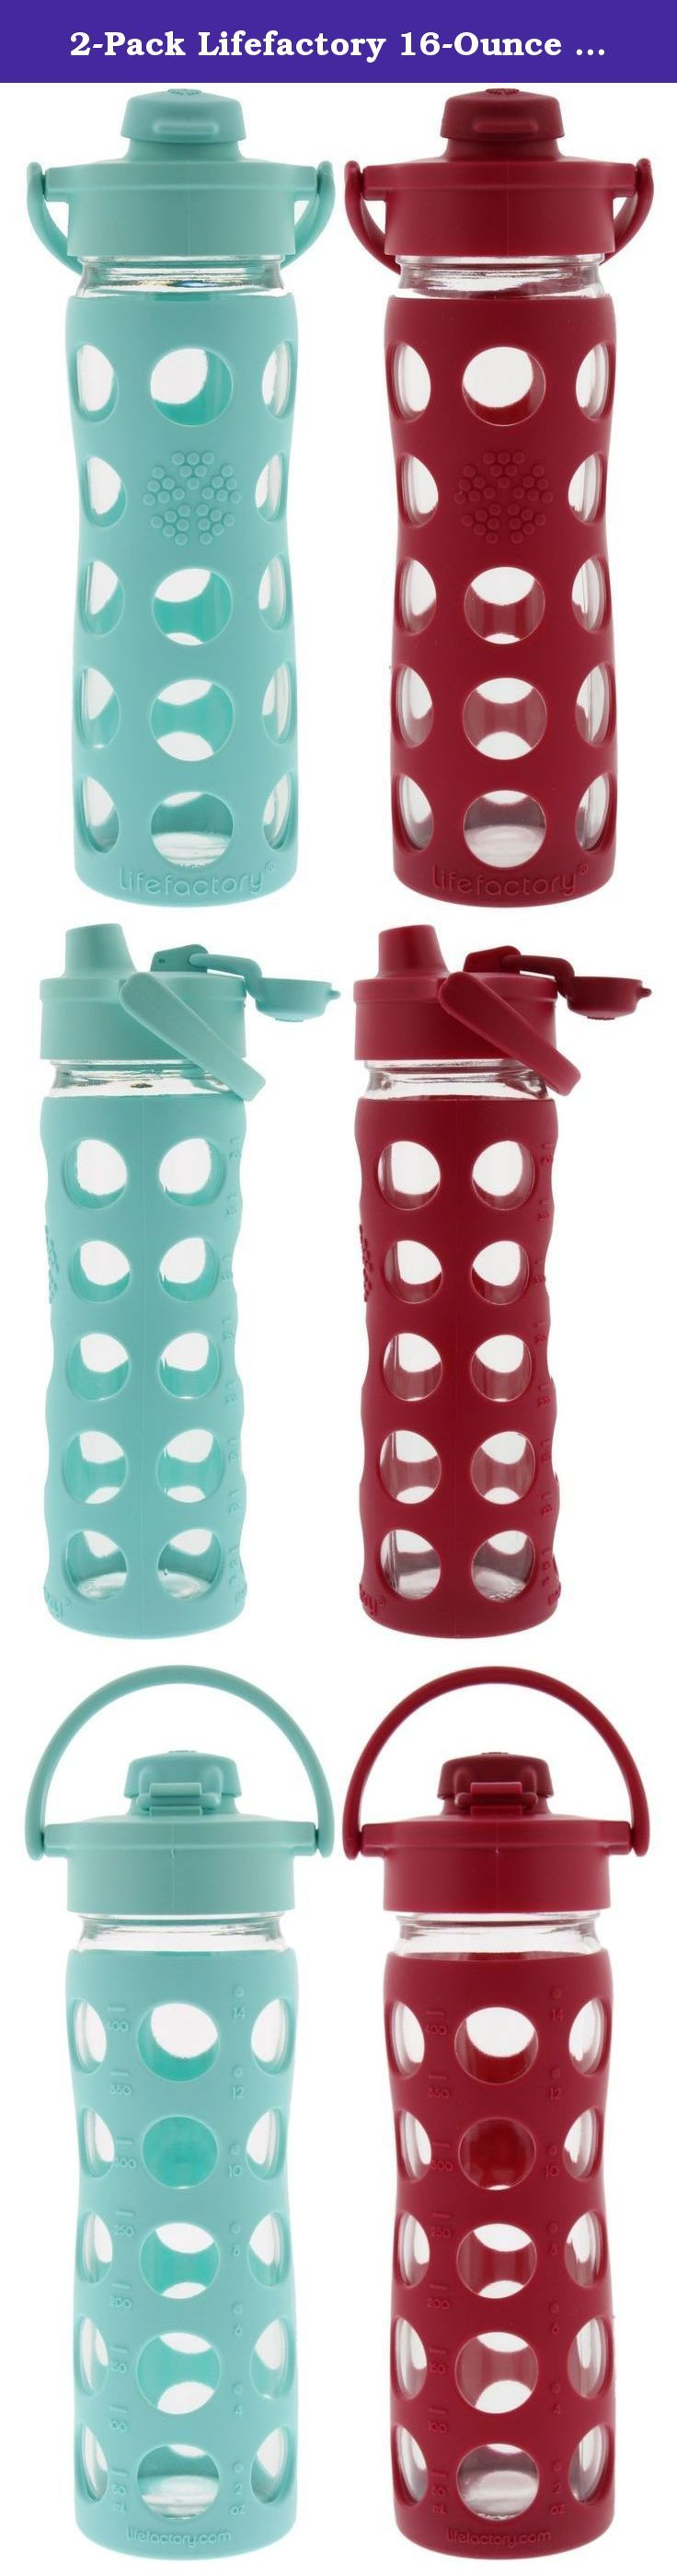 2-Pack Lifefactory 16-Ounce Flip Cap Beverage Bottles (Turquoise and Raspberry). Performance meets Purity. The performance of the Flip Top Cap meets the purity of glass. The Flip Top Cap collection offers easy on-the-go drinking from the narrow mouth spout with the convenience of wide mouth access. 16 oz size is a bit slimmer and fits well in most car cup holders making it a perfect road trip companion. BPA free. Dishwasher safe. Made in the U.S. and Europe.